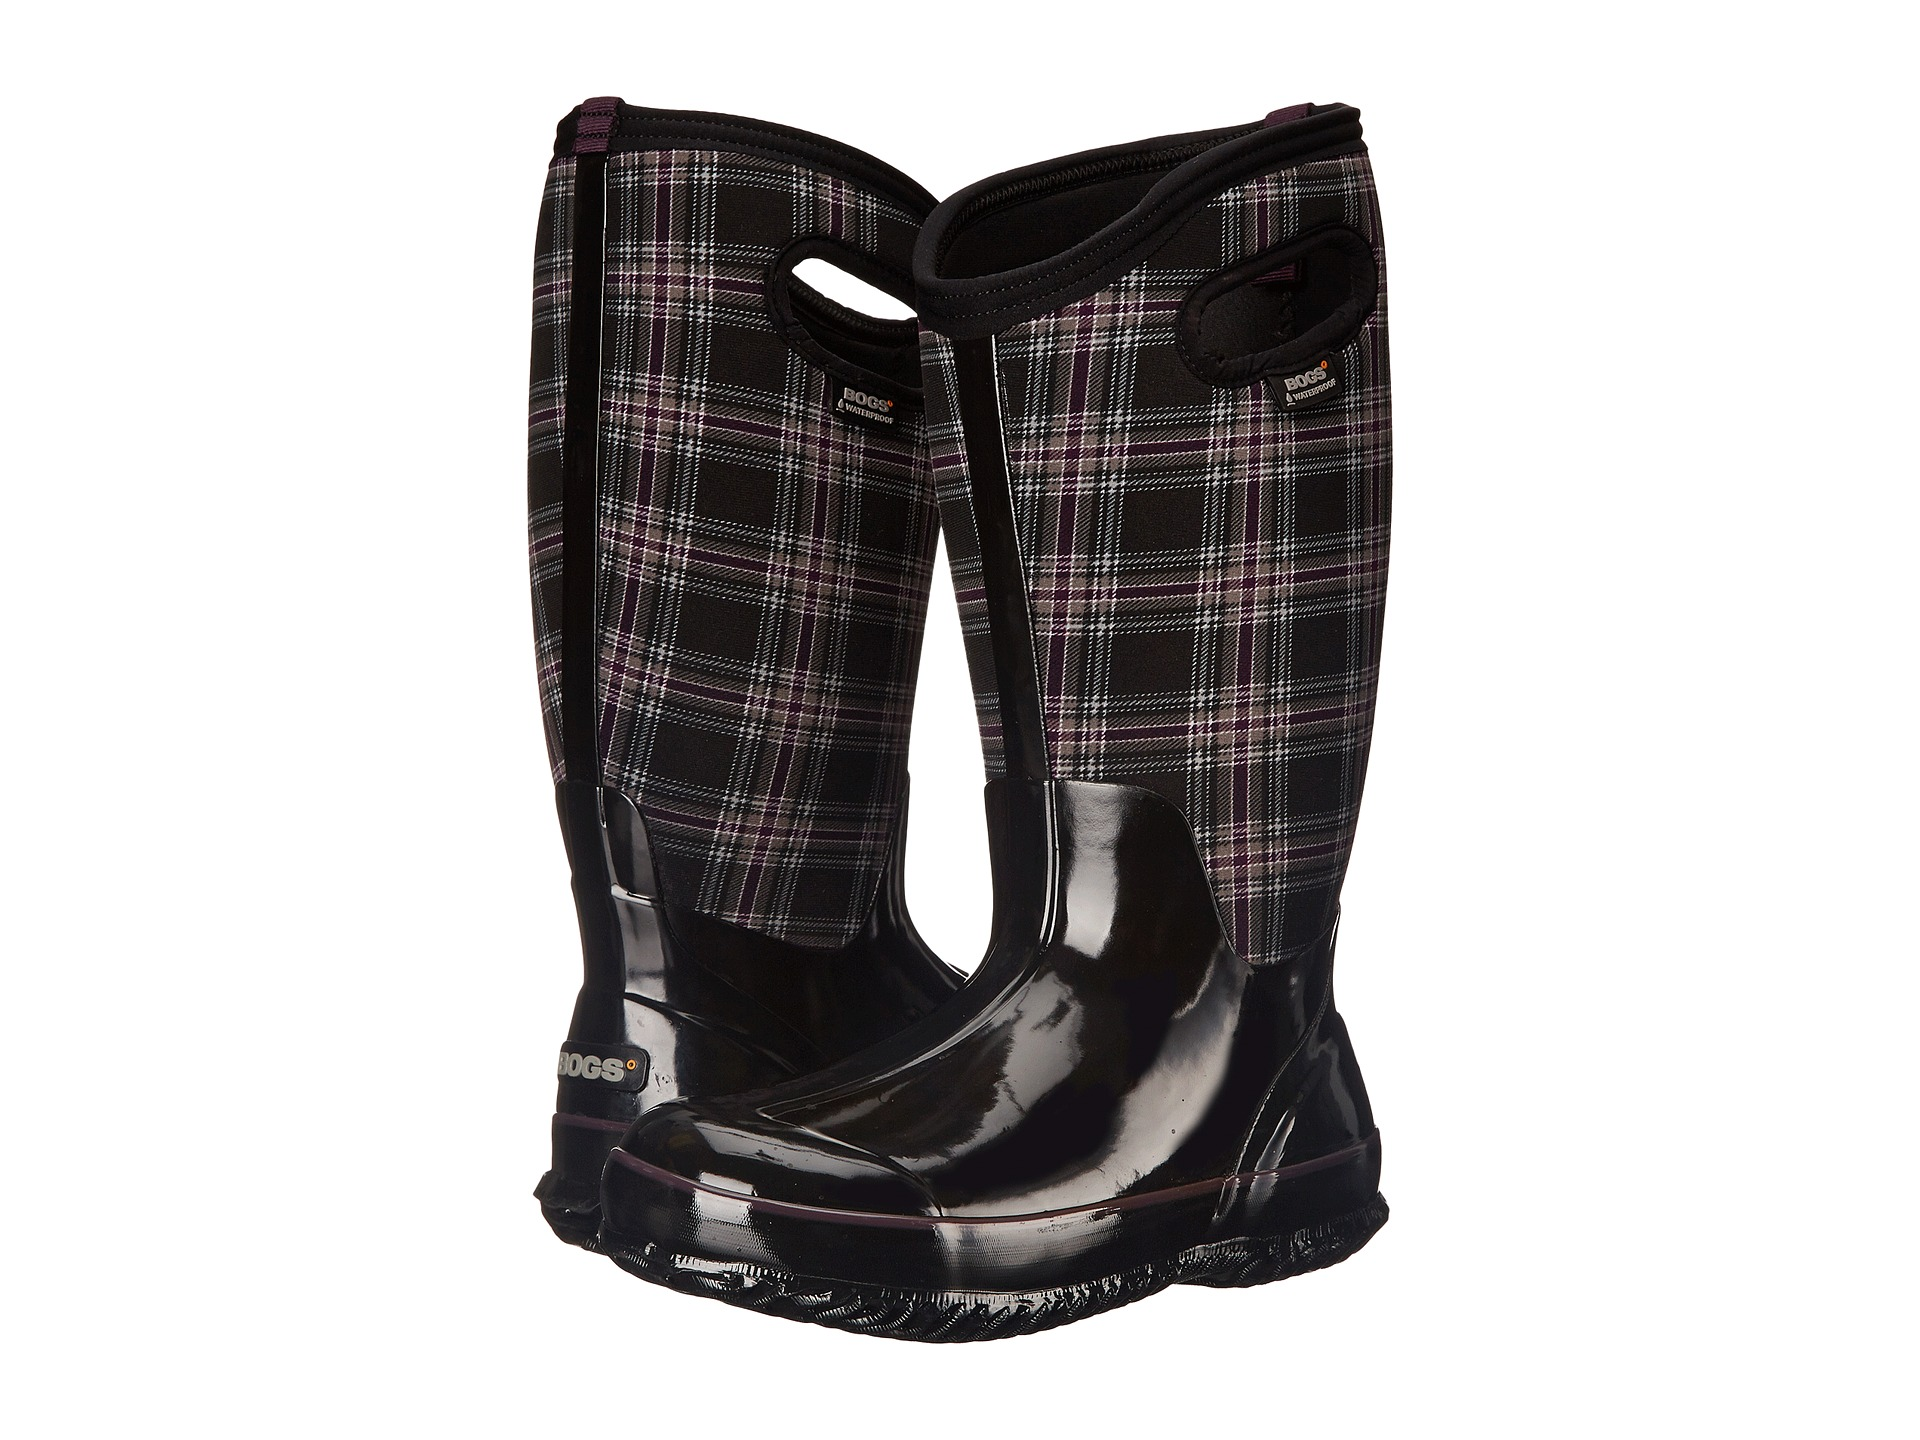 Bogs Classic Winter Plaid Tall Wide Calf Boot - 6pm.com